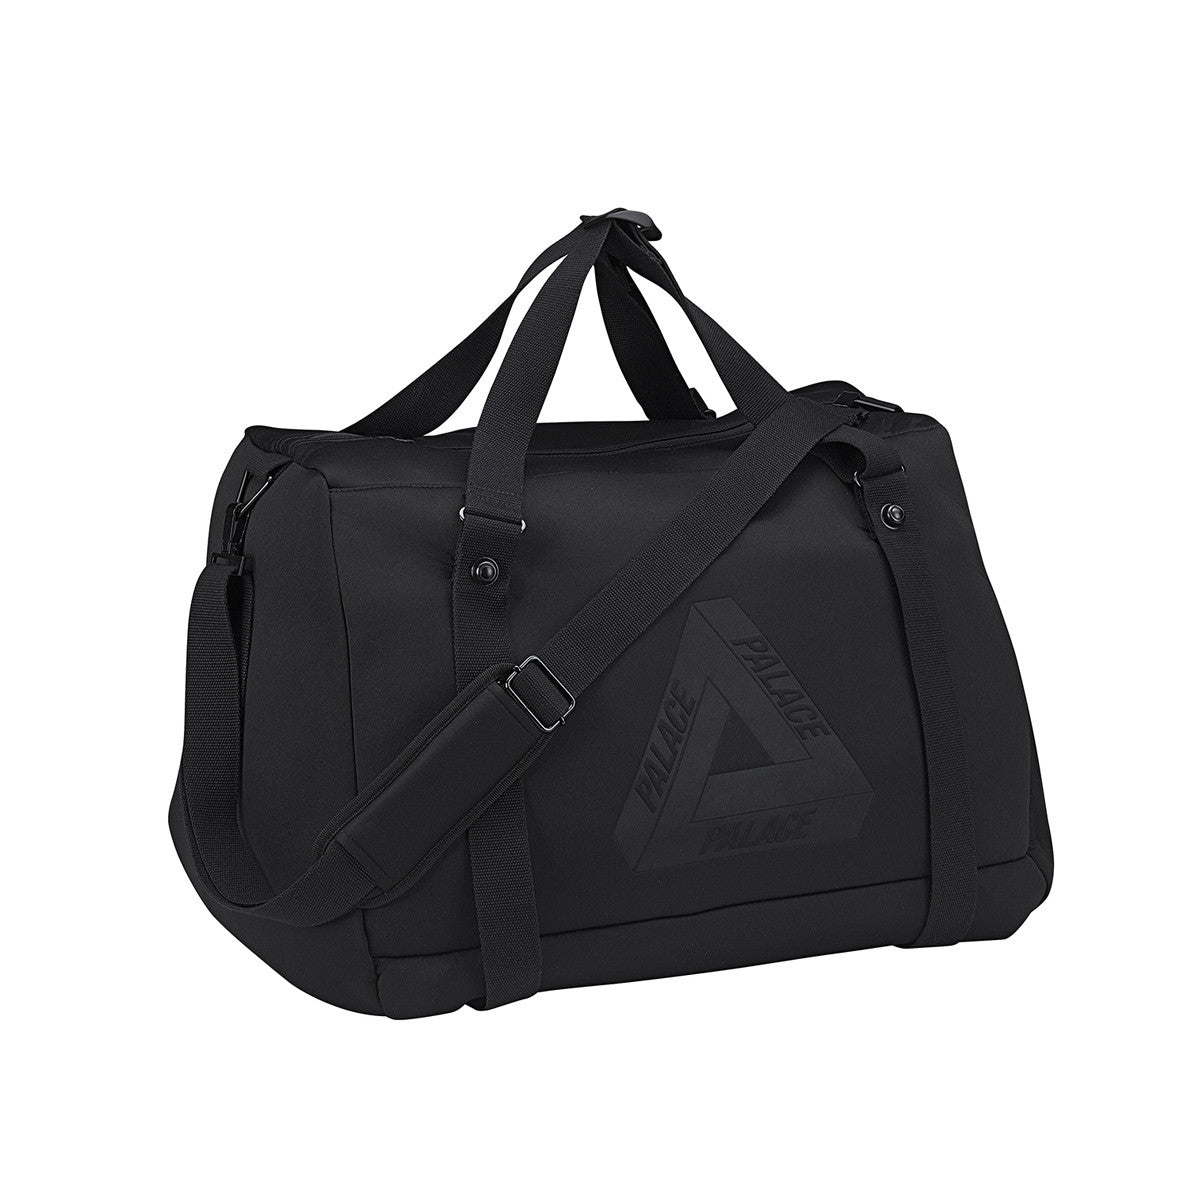 Adidas x Palace Teambag Reflective Black